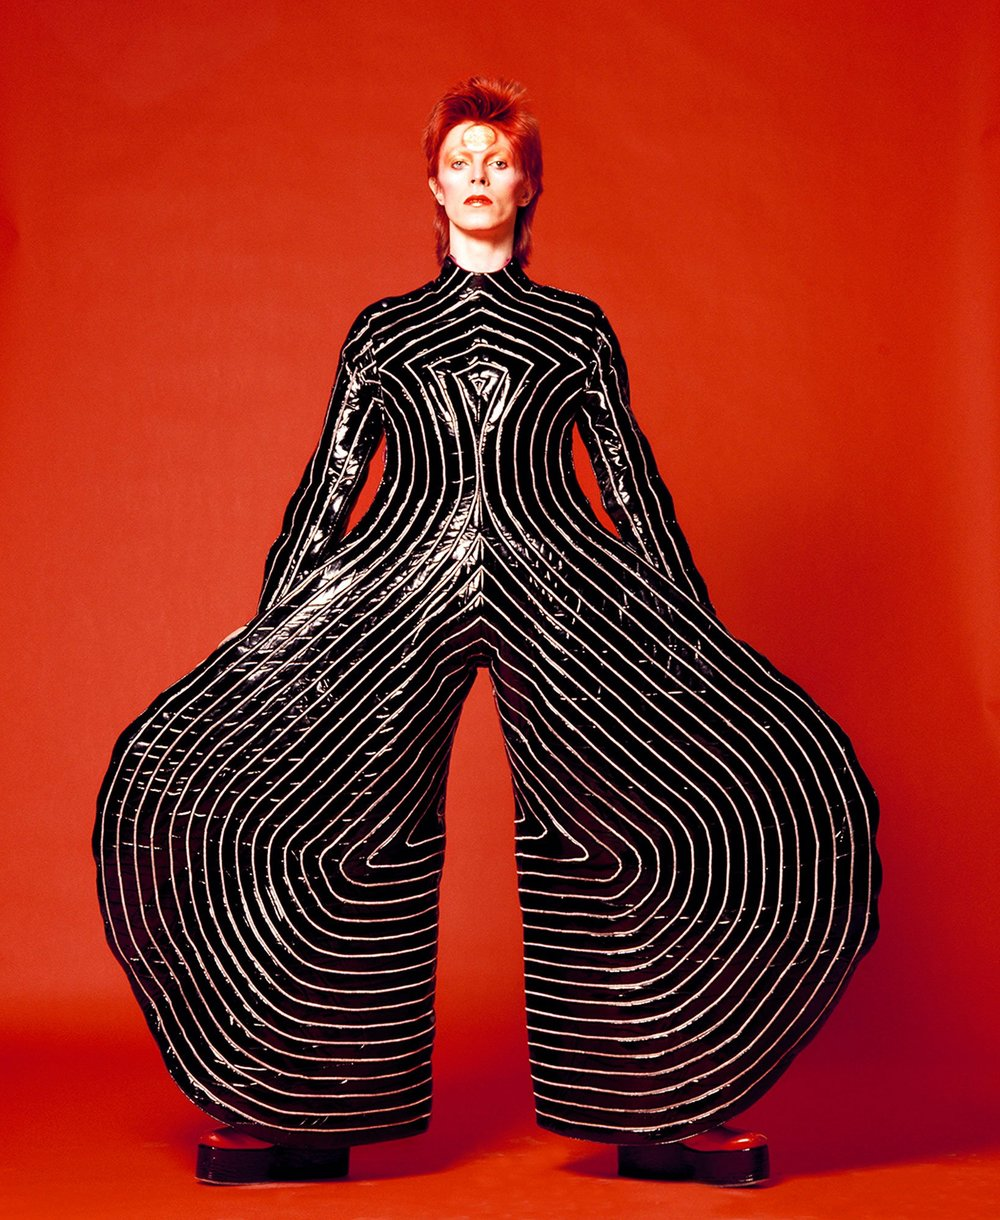 David Bowie 1973. This classic shot contrasts colors versus the black and white line work accentuating the curves of the outfit.